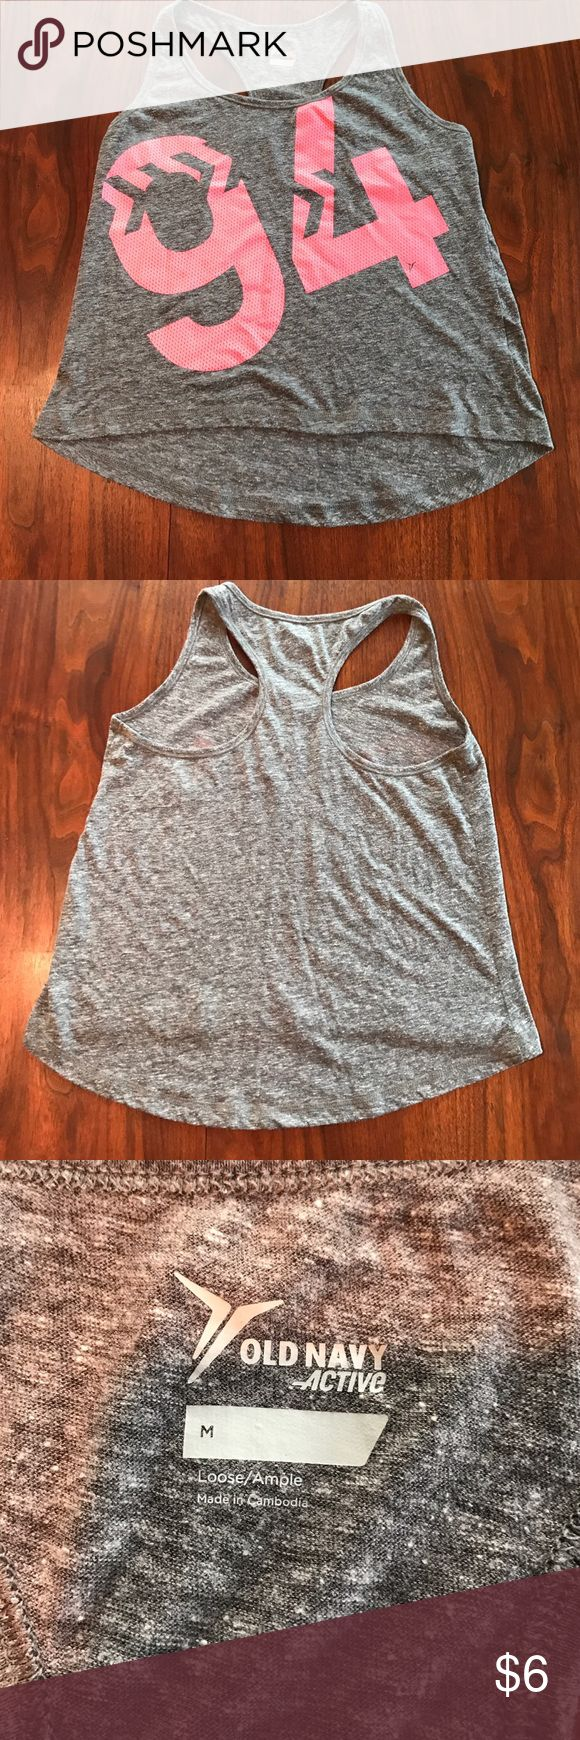 "❤Old Navy tank top❤ Gray and pink Old Navy workout tank top. In great condition, no creasing on the ""94"" pink application. Rides a little longer in back. This item is included in the 3 for $10 sale! All items with a ❤ in title are 3 for $10. Add 3 ❤items to bundle, offer $10 and I'll accept! Old Navy Tops Tank Tops"